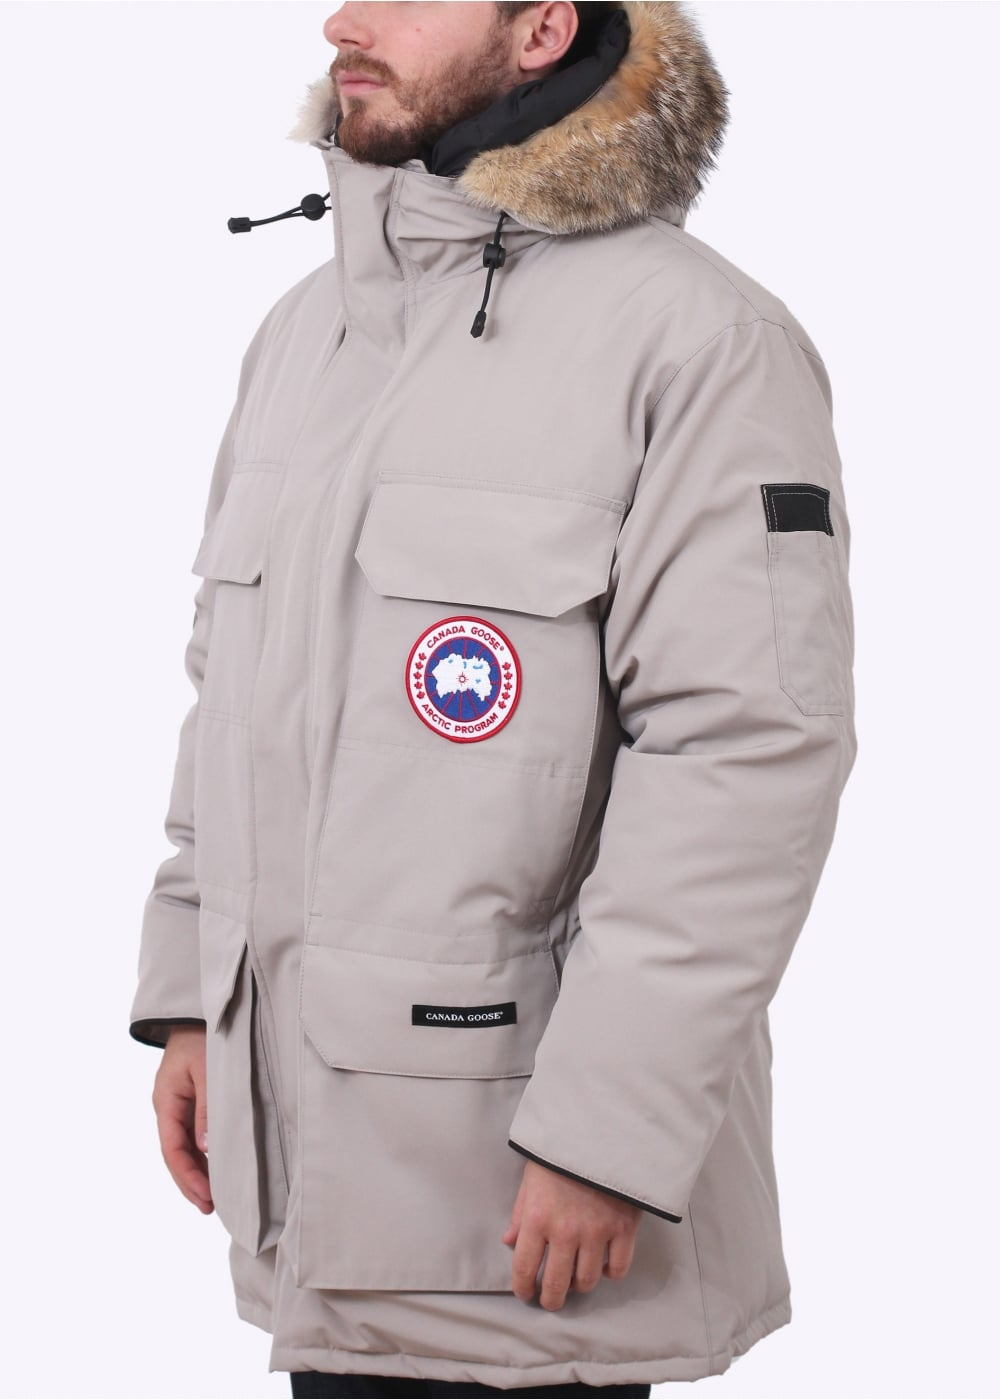 Canada Goose Expedition Parka - Limestone - Canada Goose ... Hugo Boss Green Shoes